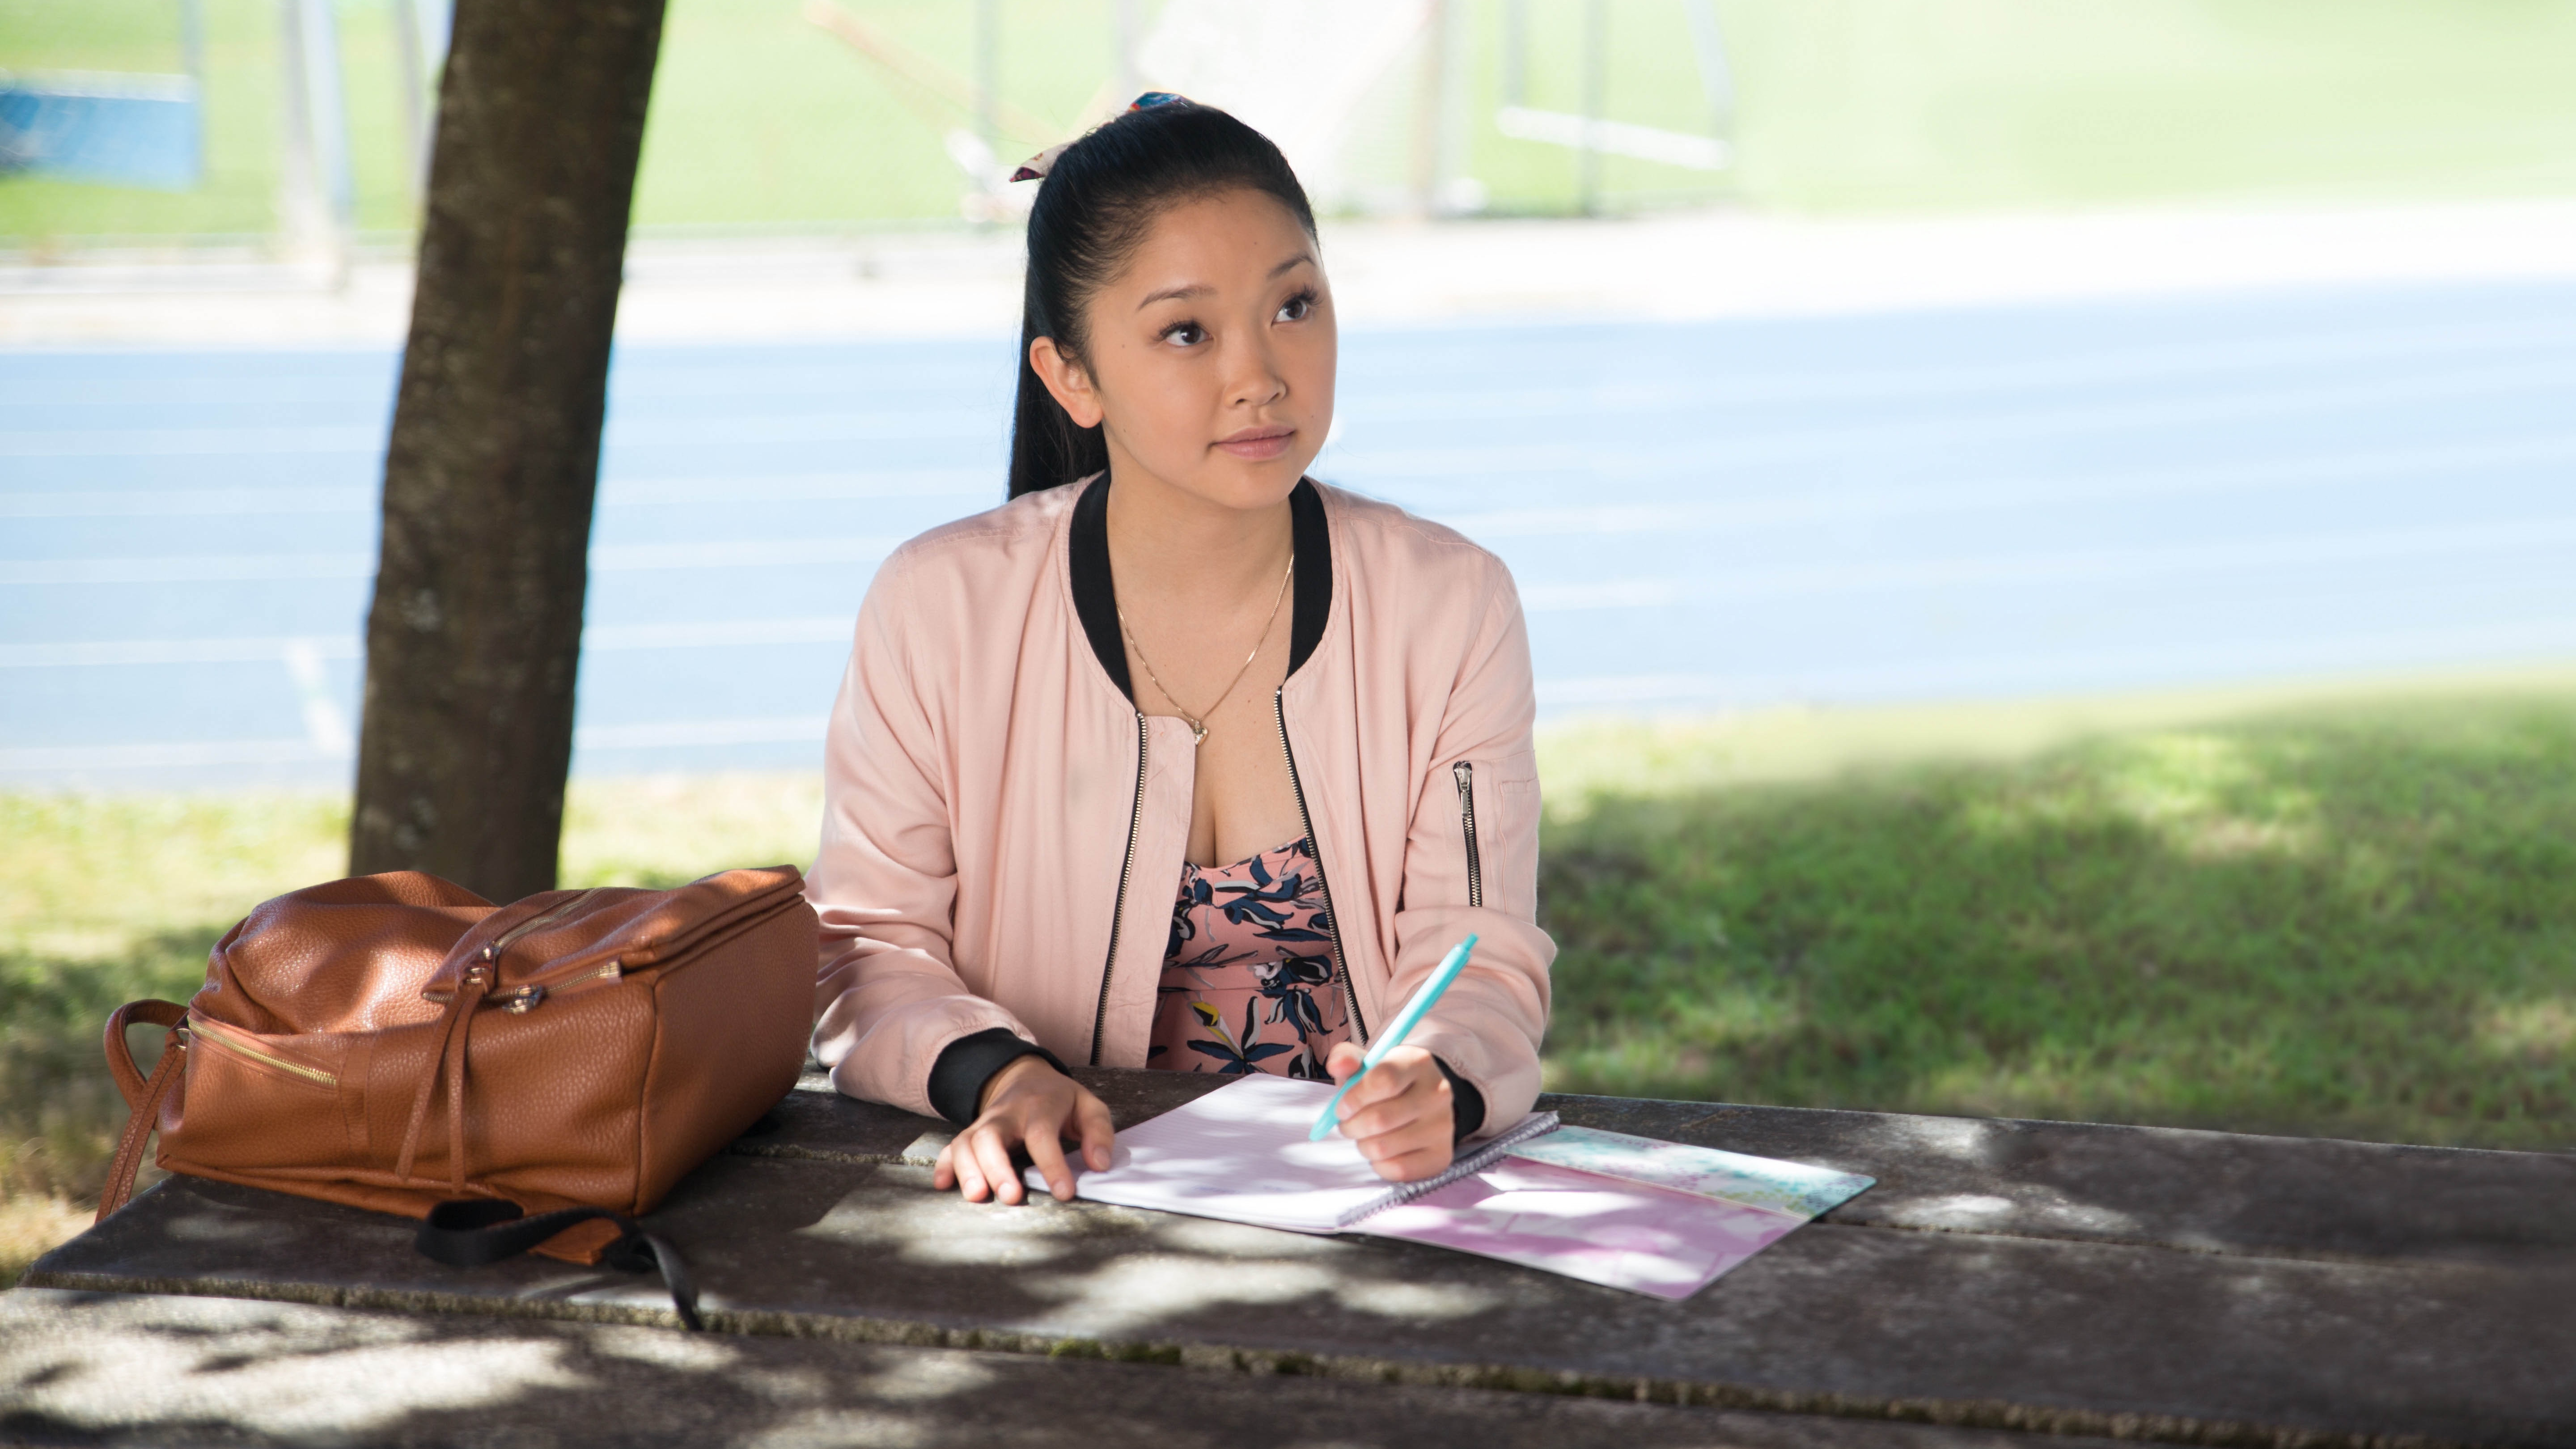 'To All The Boys I've Loved Before' to be released on Netflix this August